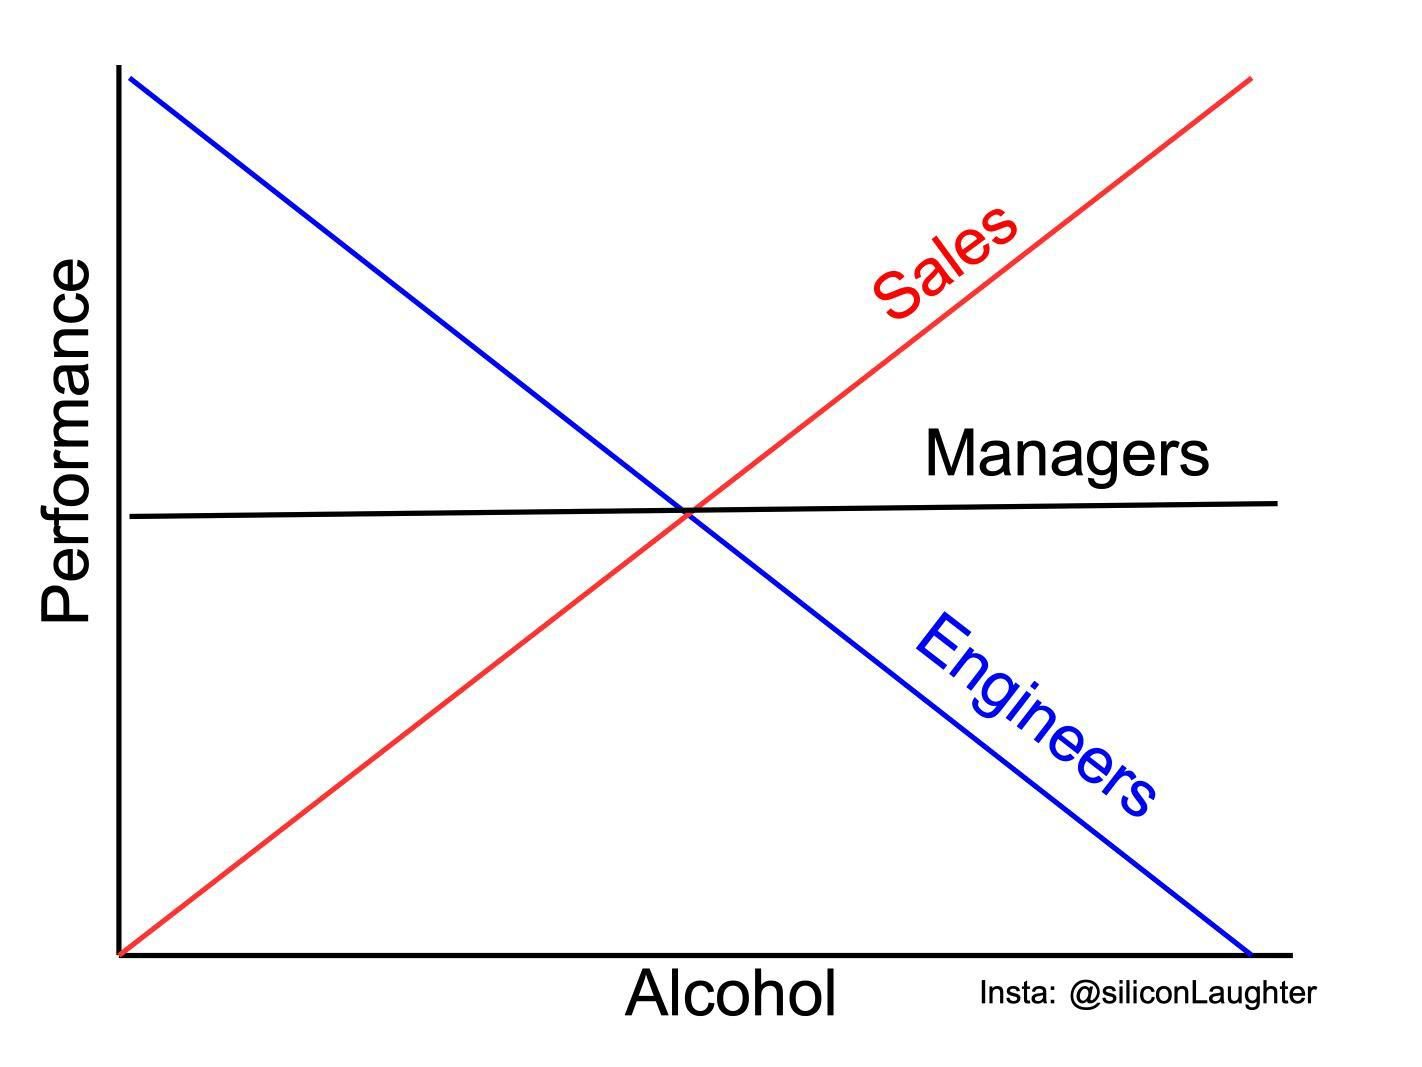 How alcohol affects professionals